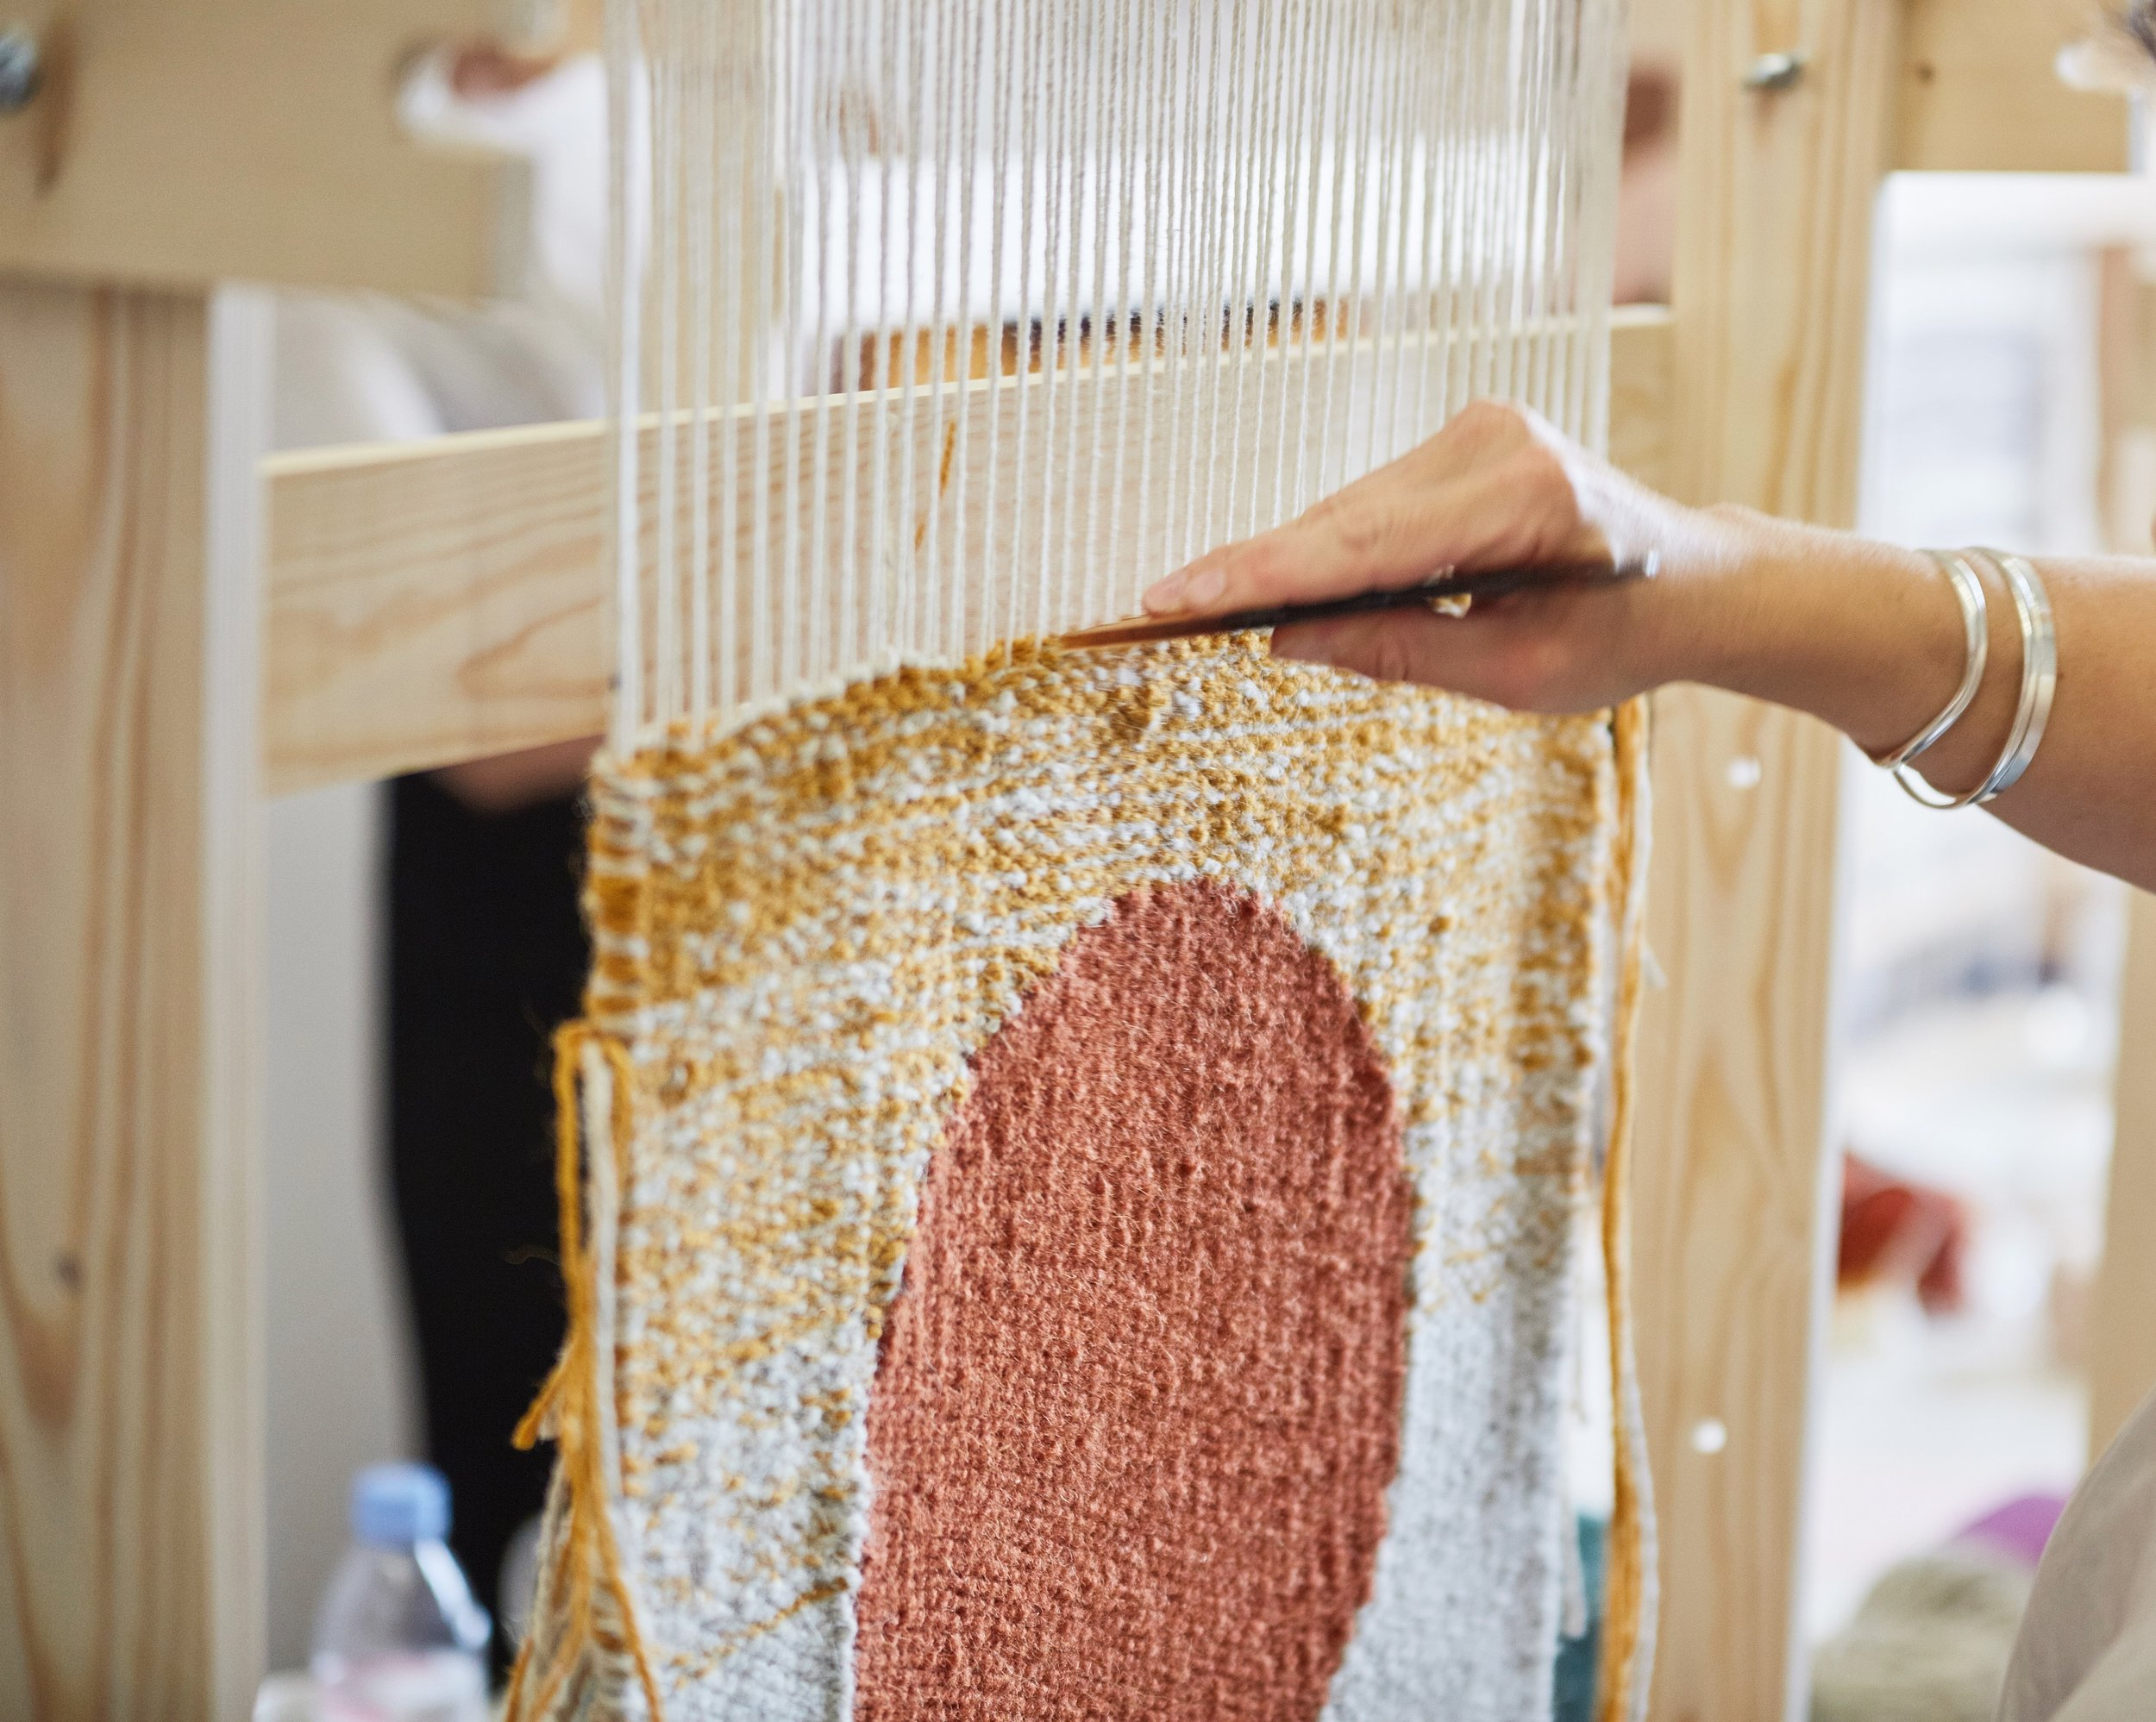 Beating down the weft to create a solid woven surface